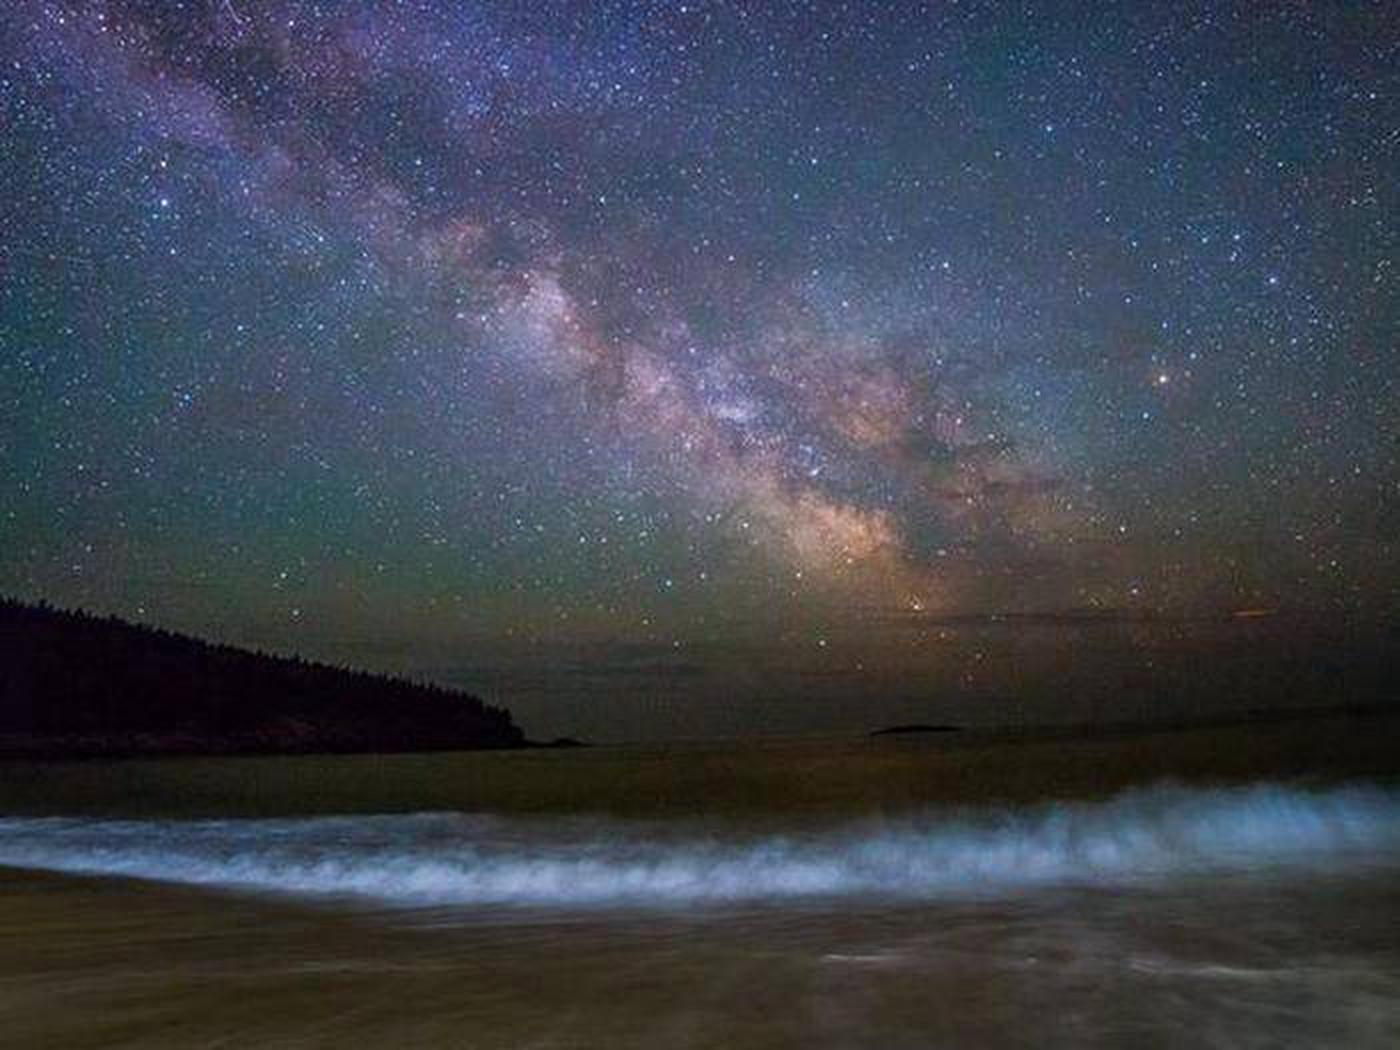 Milky Way galaxy over Sand BeachMilky Way galaxy visible over Sand Beach